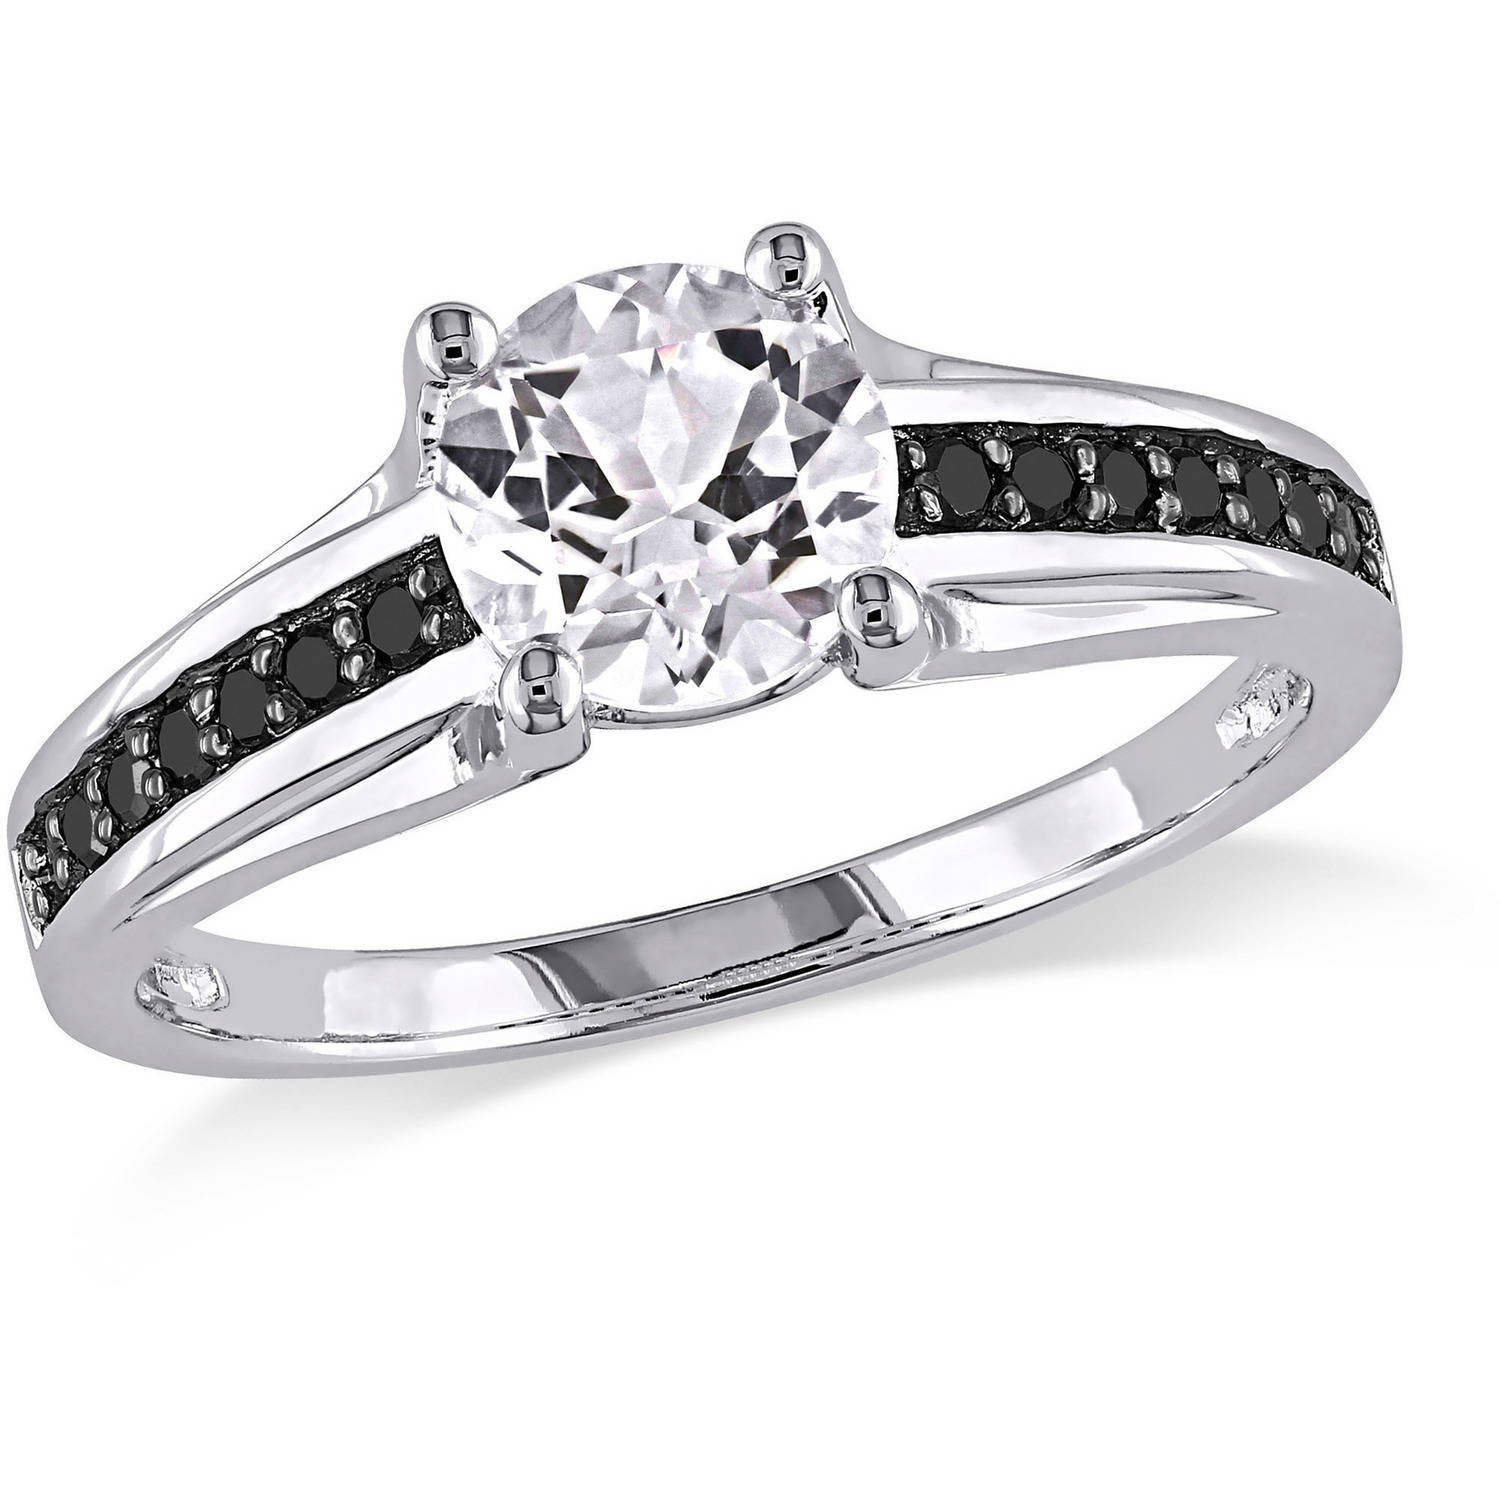 1-3/8 Carat T.G.W. Created White Sapphire and 1/7 Carat T.W. Black Diamond Sterling Silver Ring